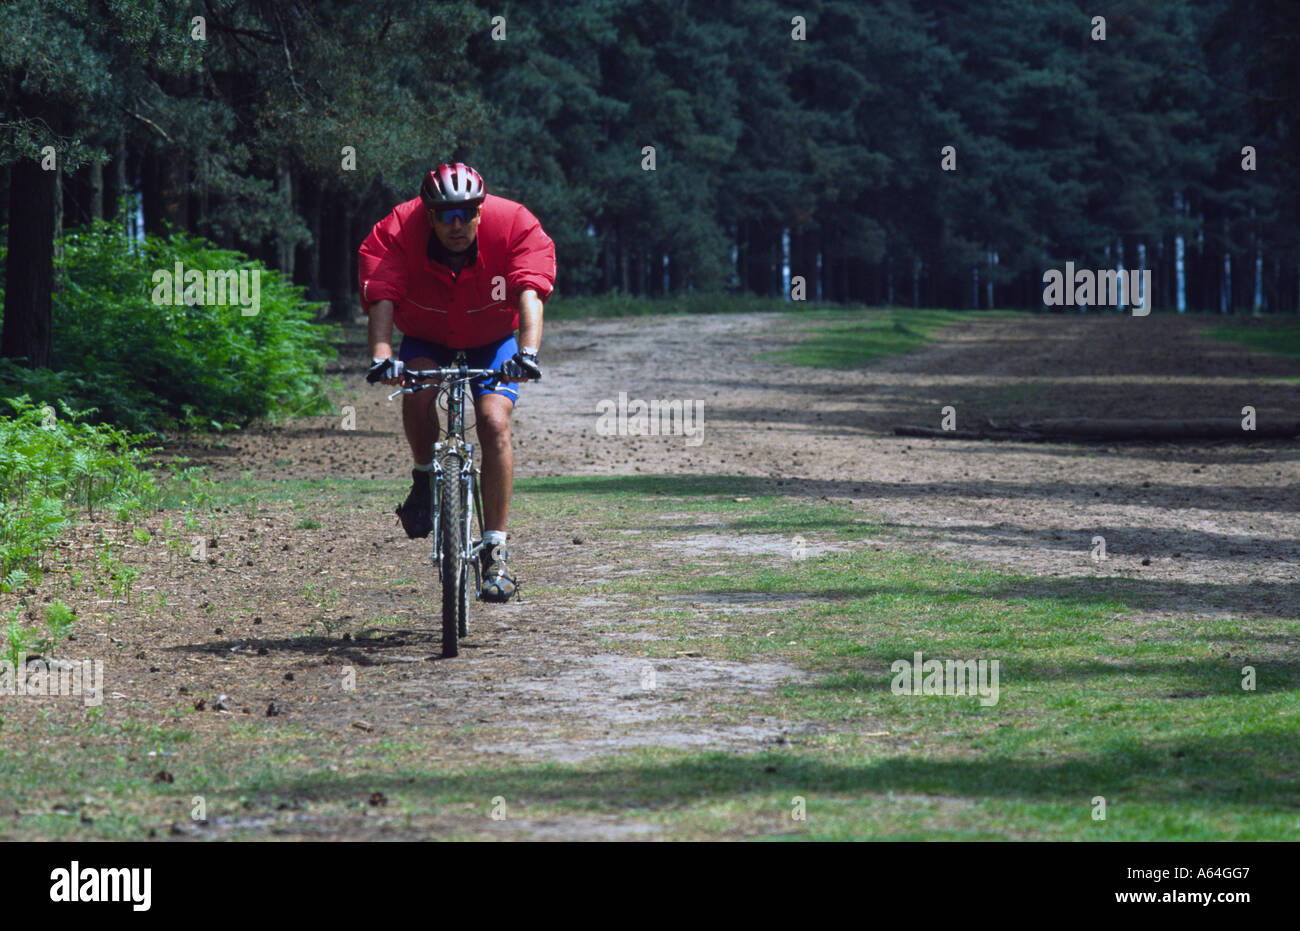 Mountain Biking at the bike park Brickhill Woods Woburn Sands forest Centre Parcs - Stock Image